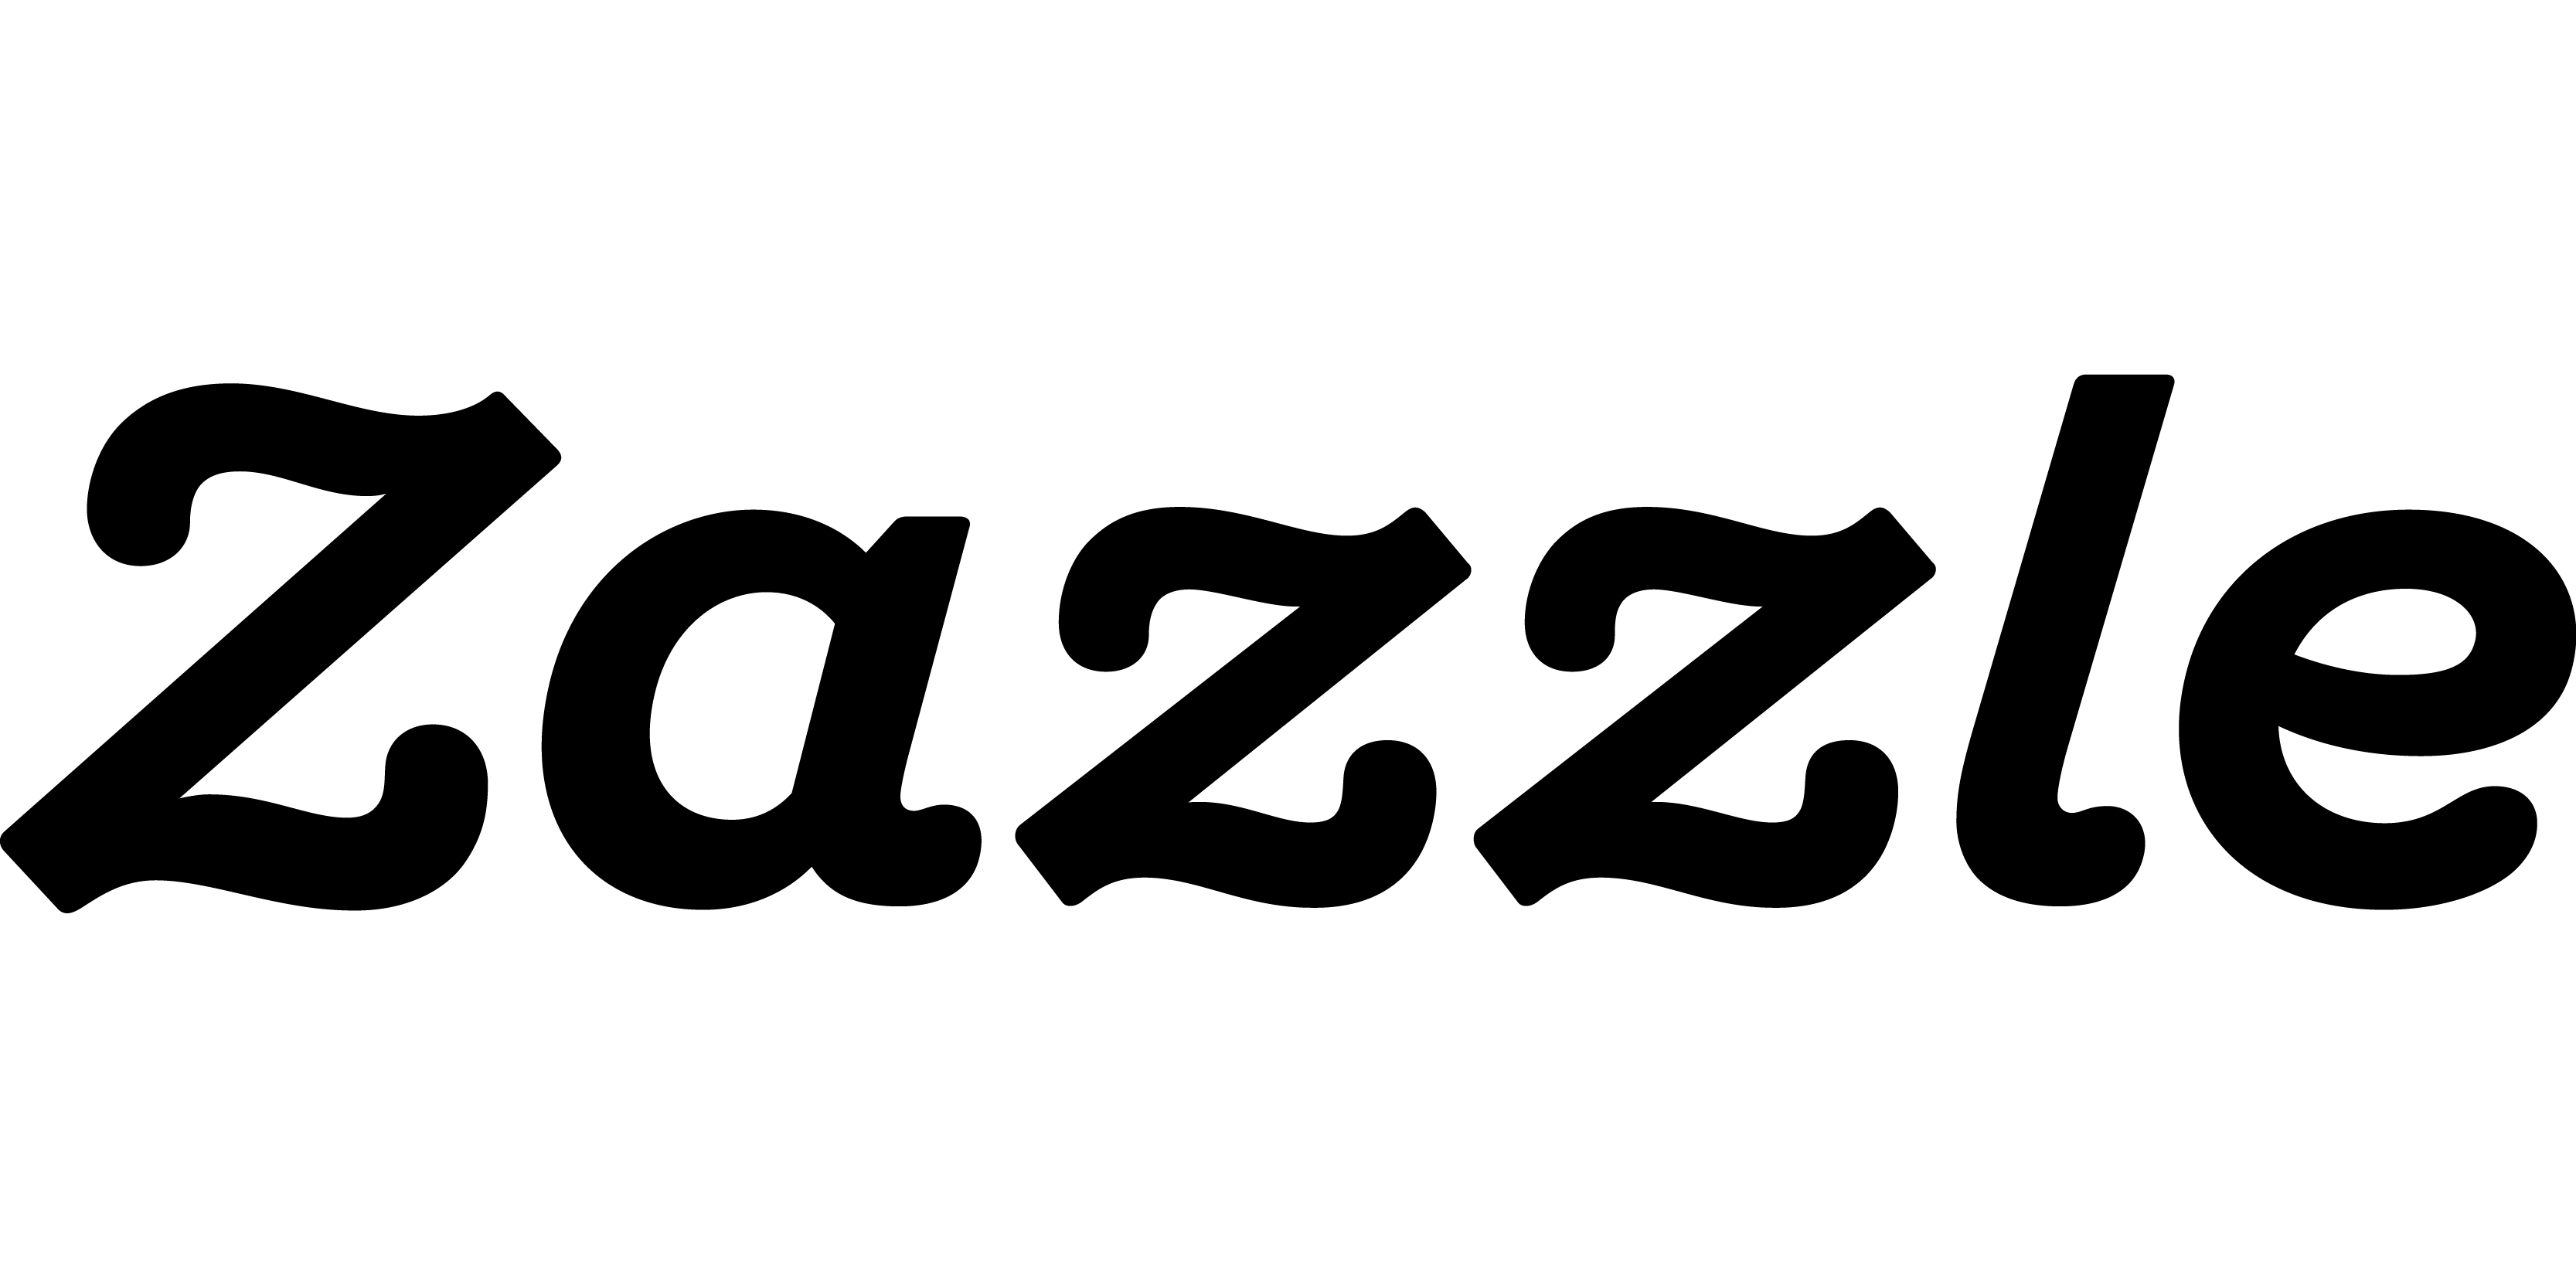 zazzleLetterform_black